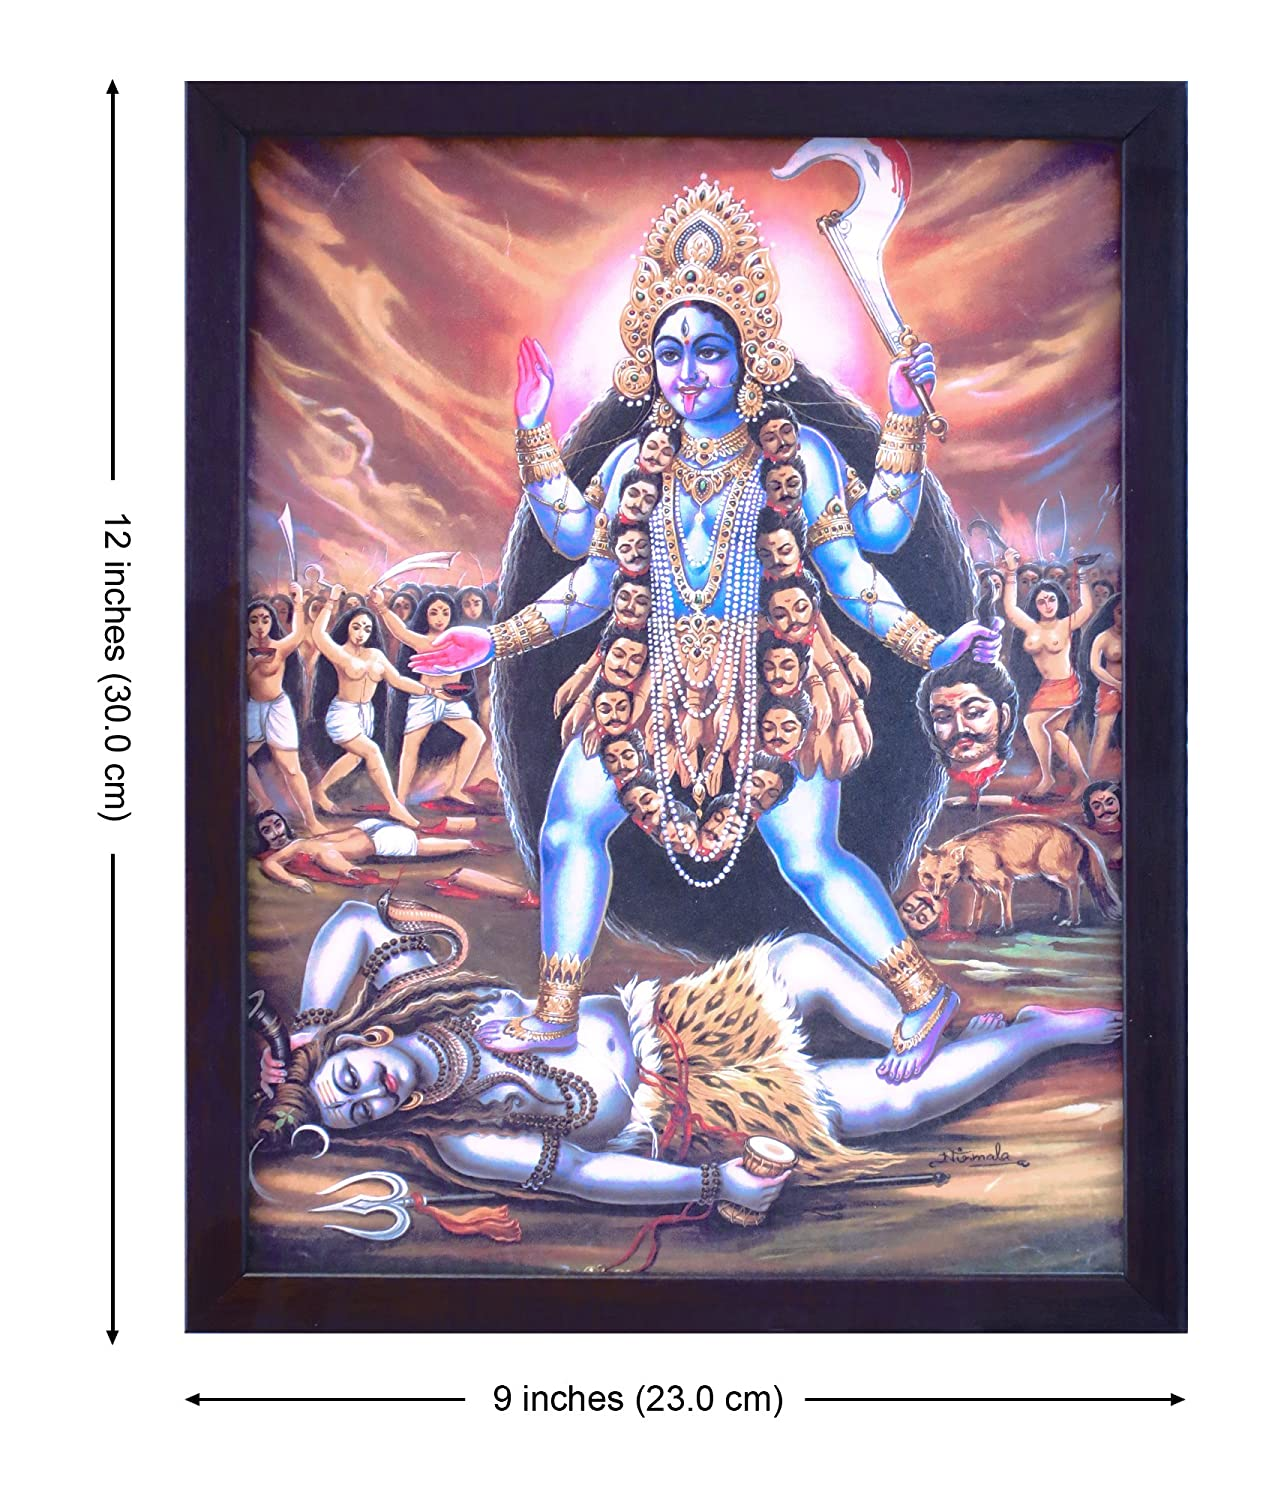 Amazon com: Handicraft Store Hindu Goddess Maa Kali with